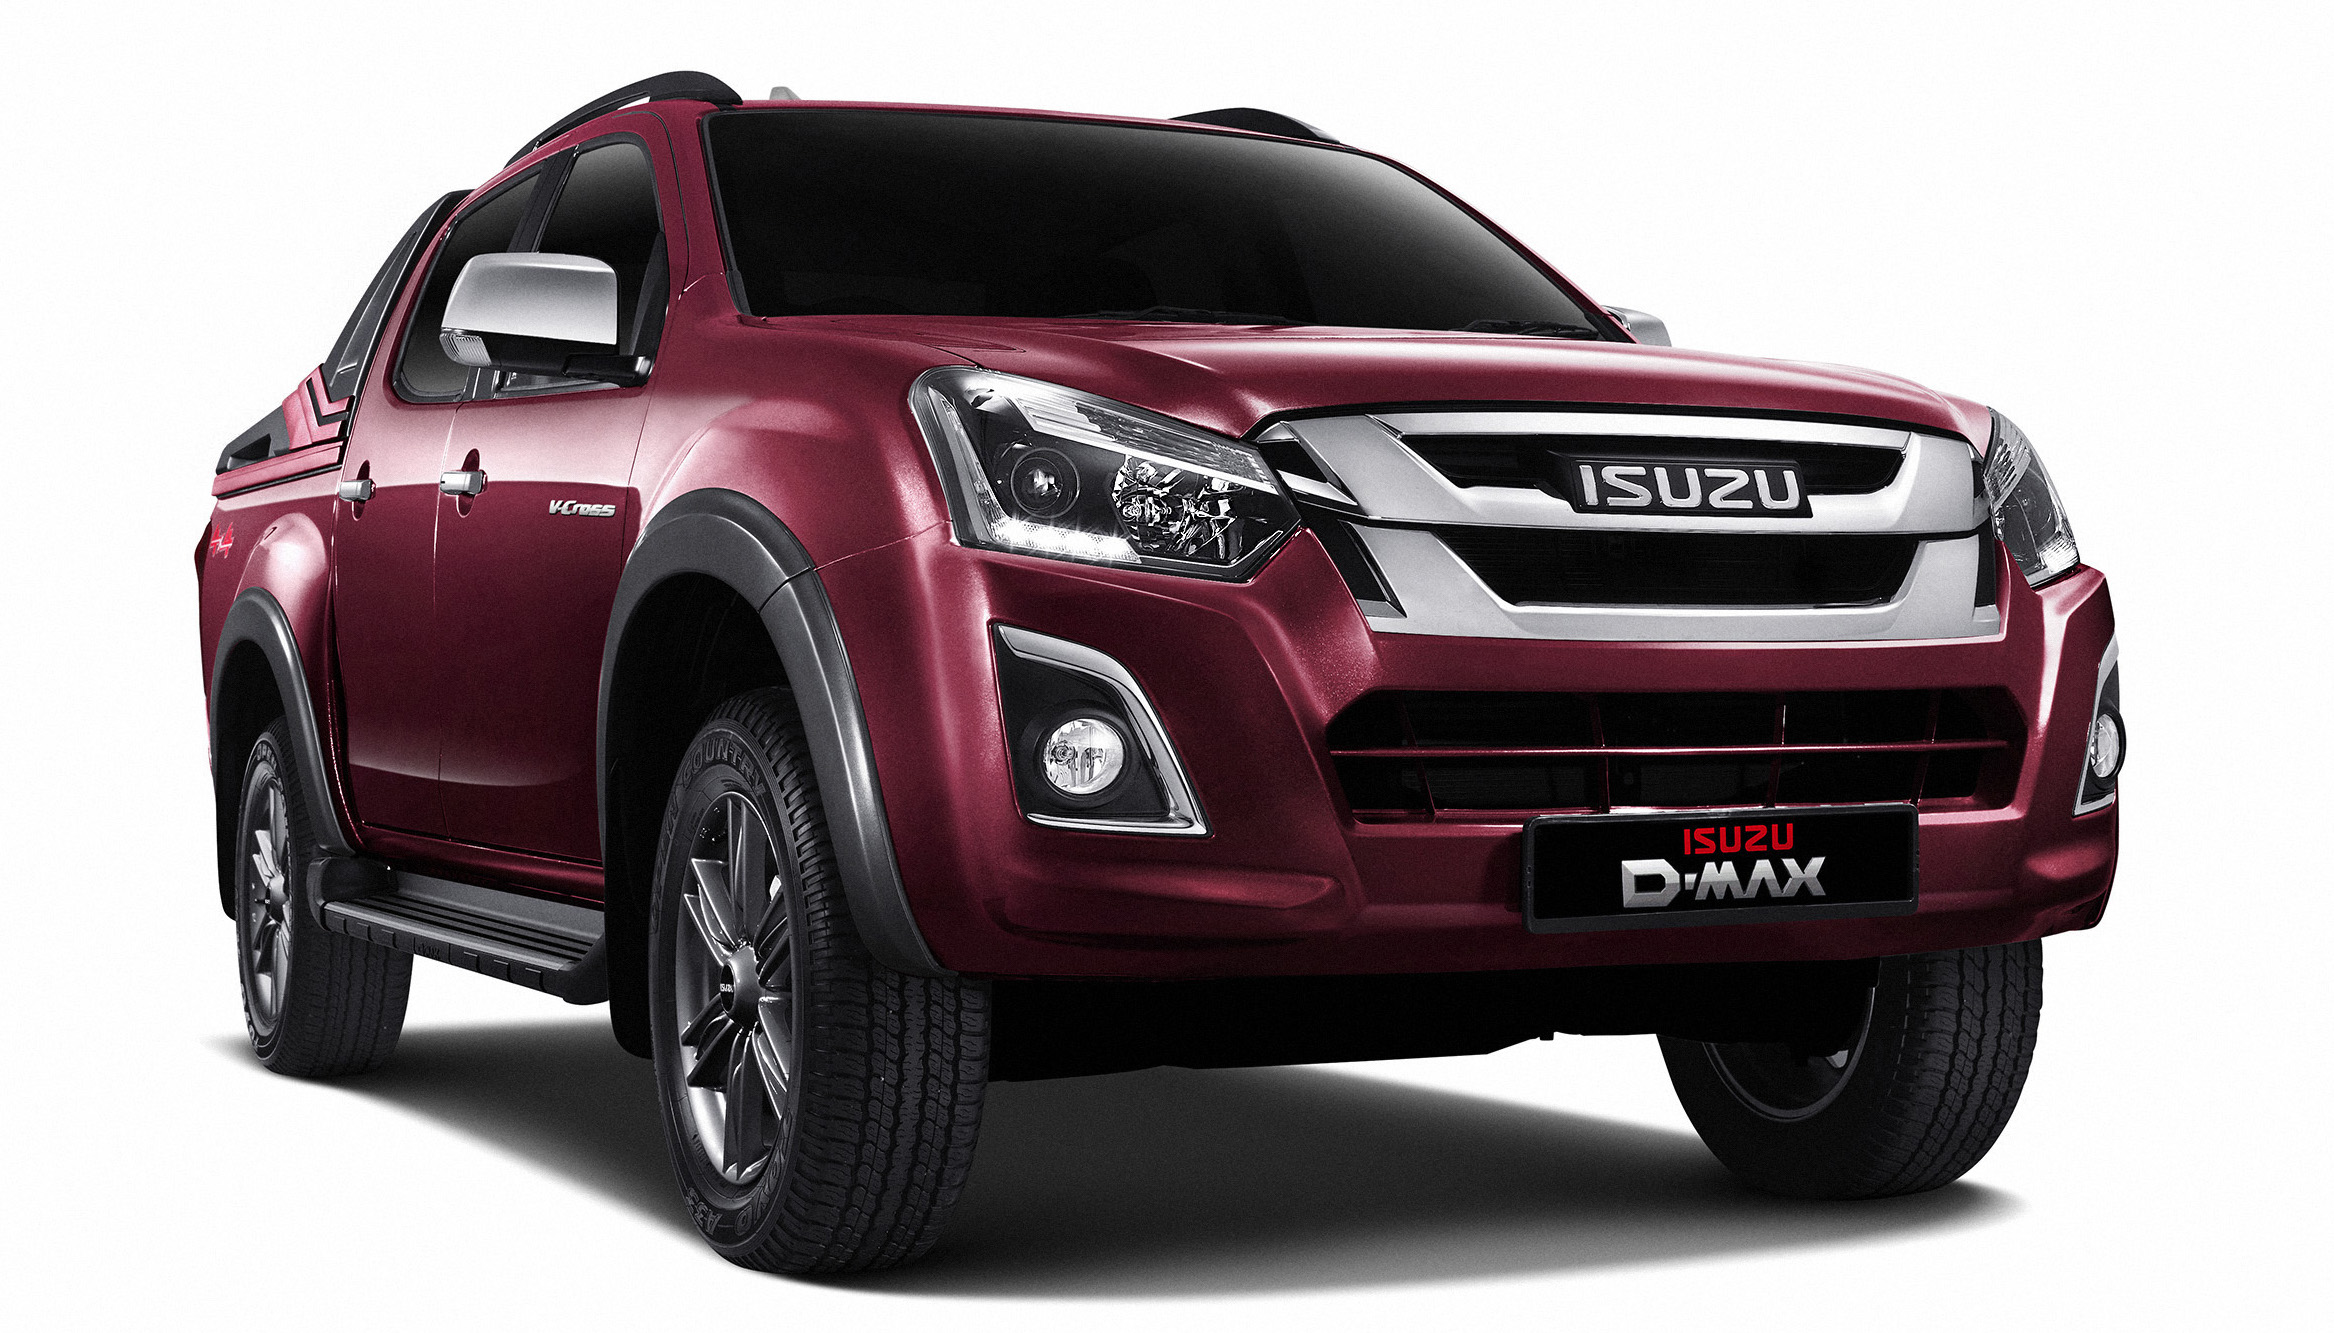 isuzu d max facelift launched in malaysia three trim levels available eight variants priced. Black Bedroom Furniture Sets. Home Design Ideas